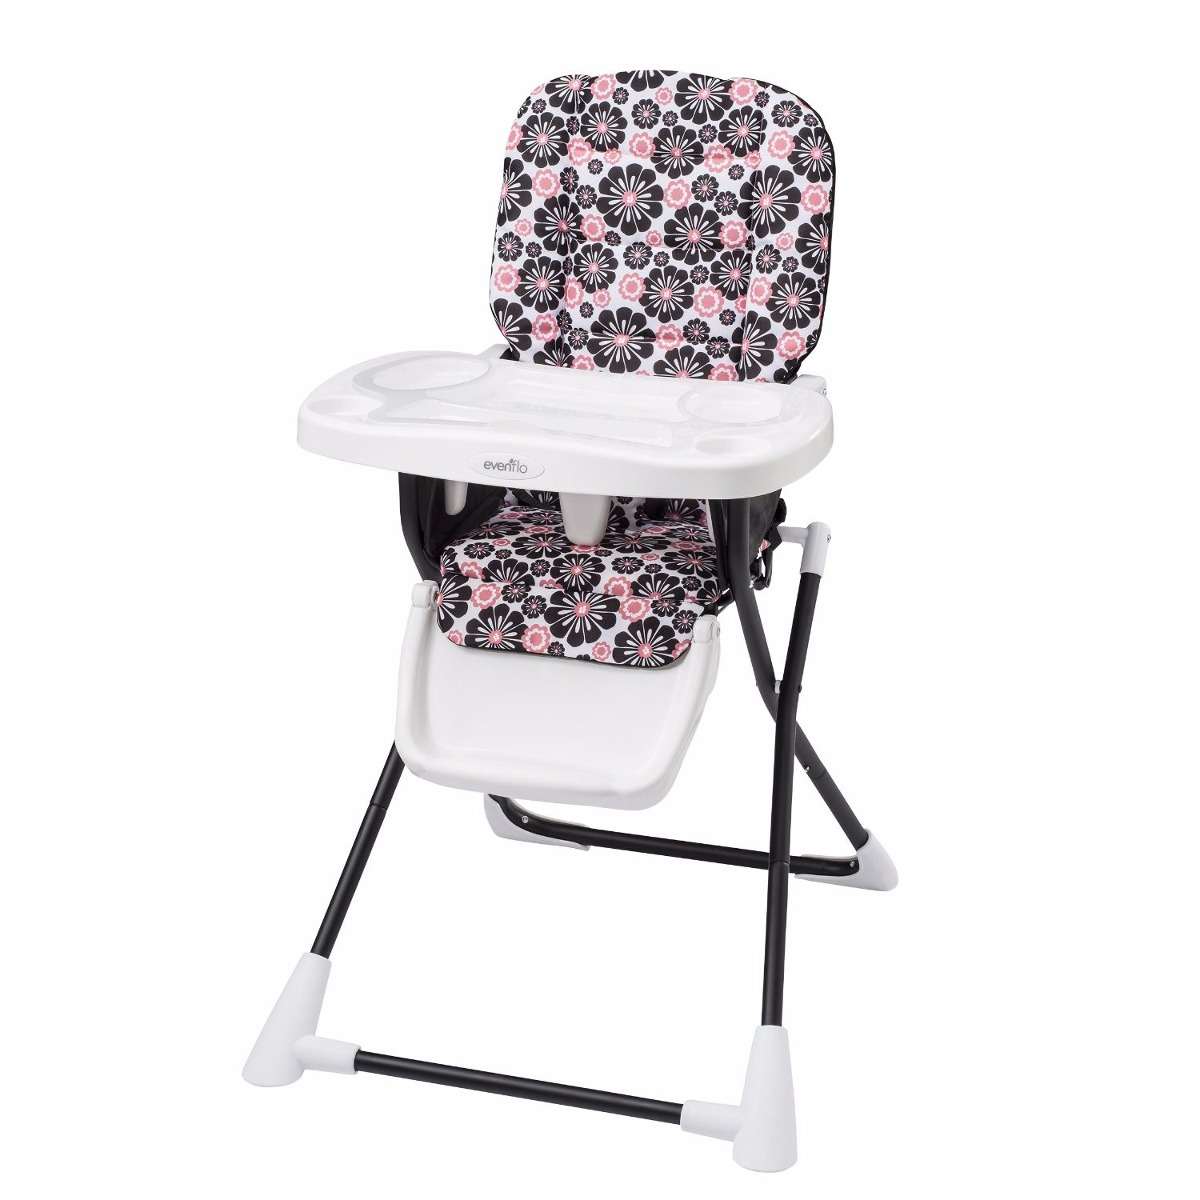 evenflo high chair easy fold recall rustic bar height table and chairs paquete penelope portabebe carreola cuna silla